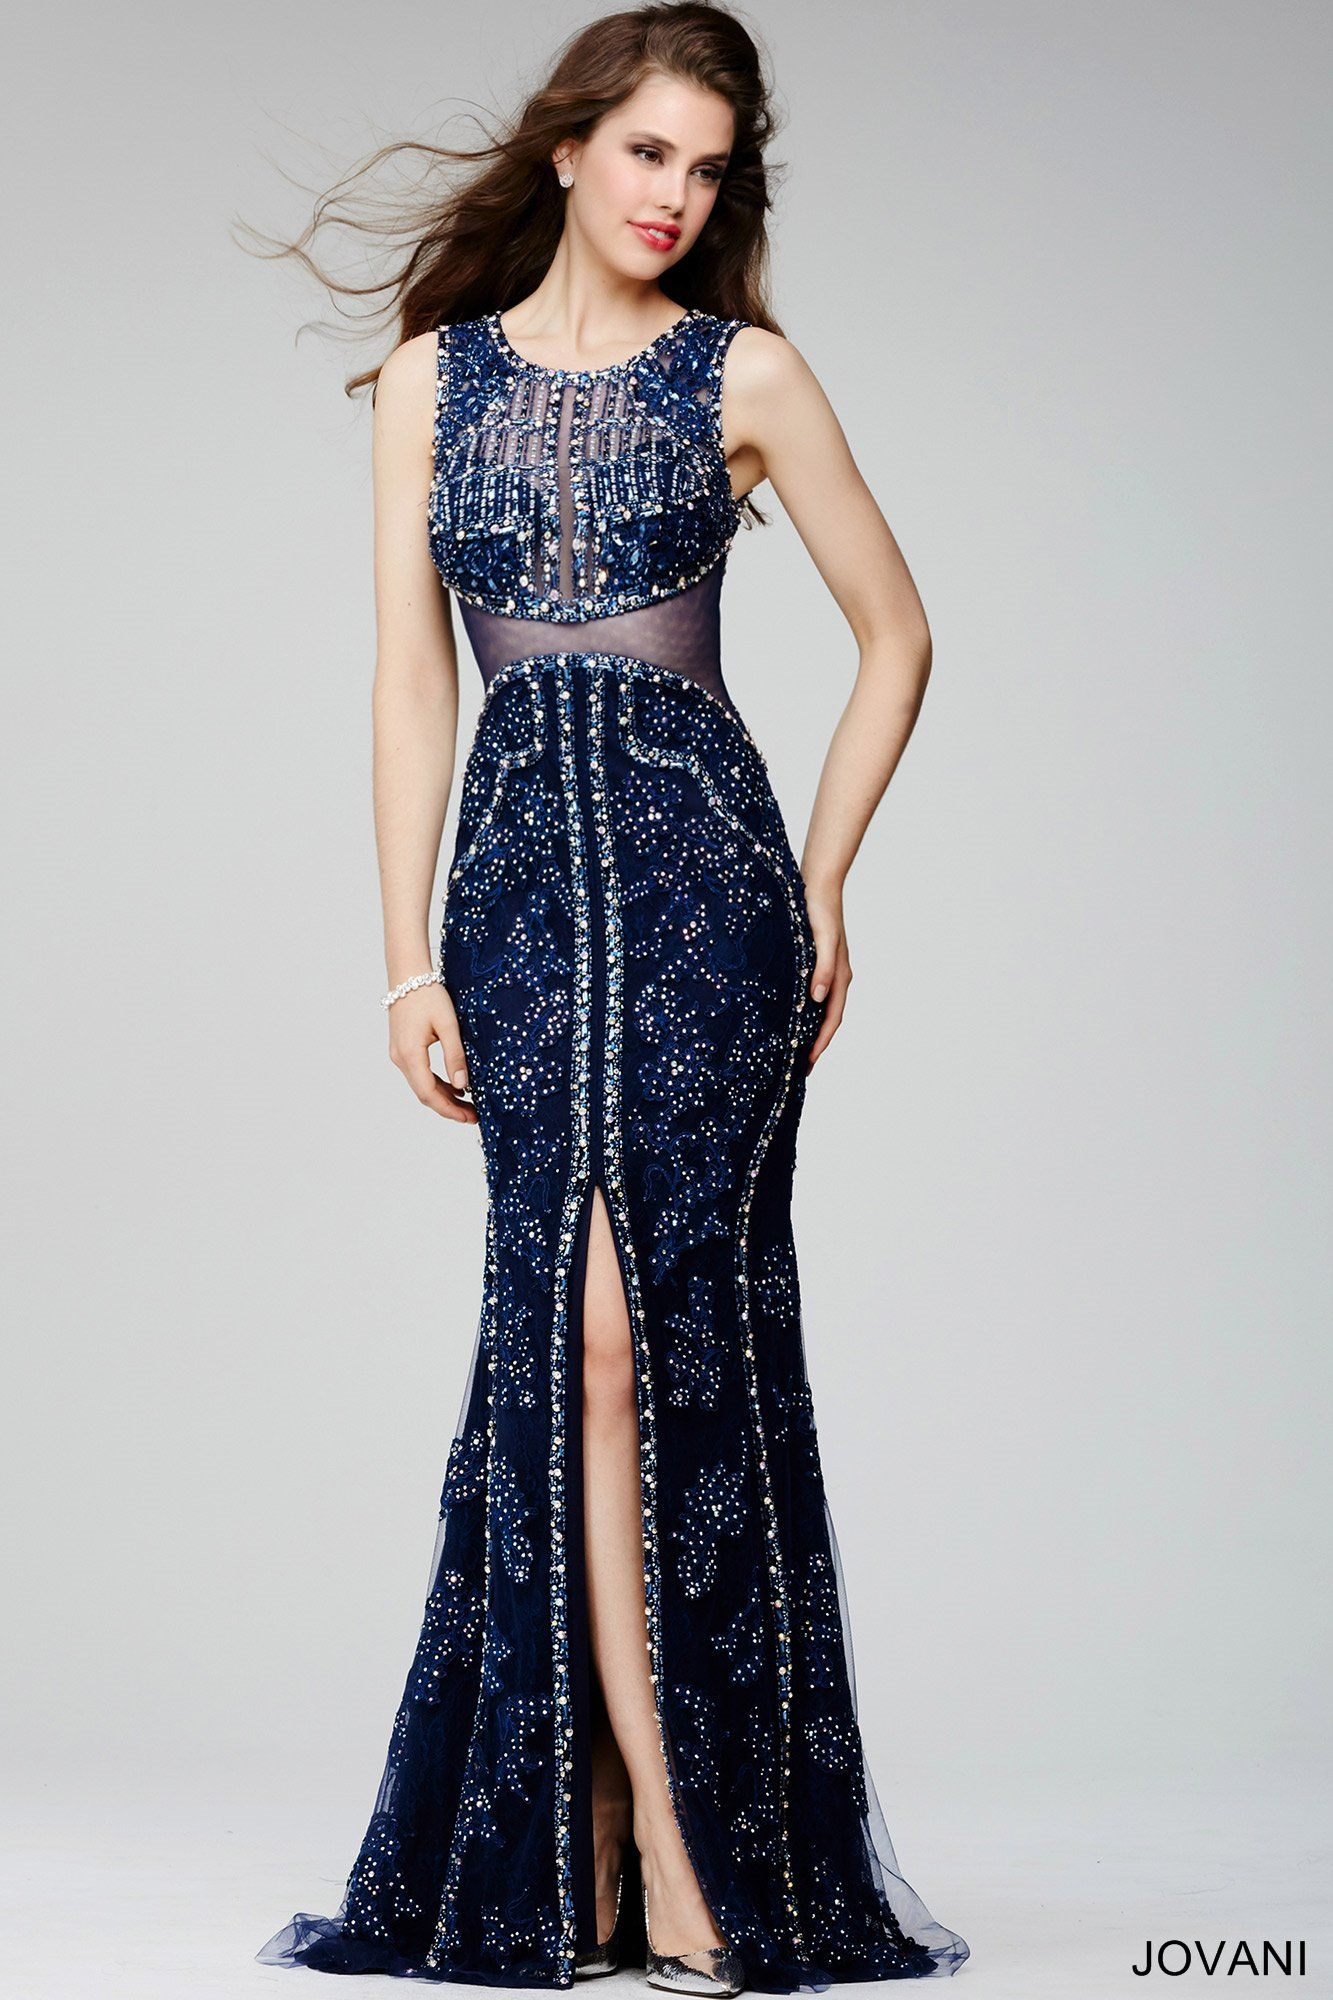 Sultry in blue  Jovani 27608  8bae8bcd6